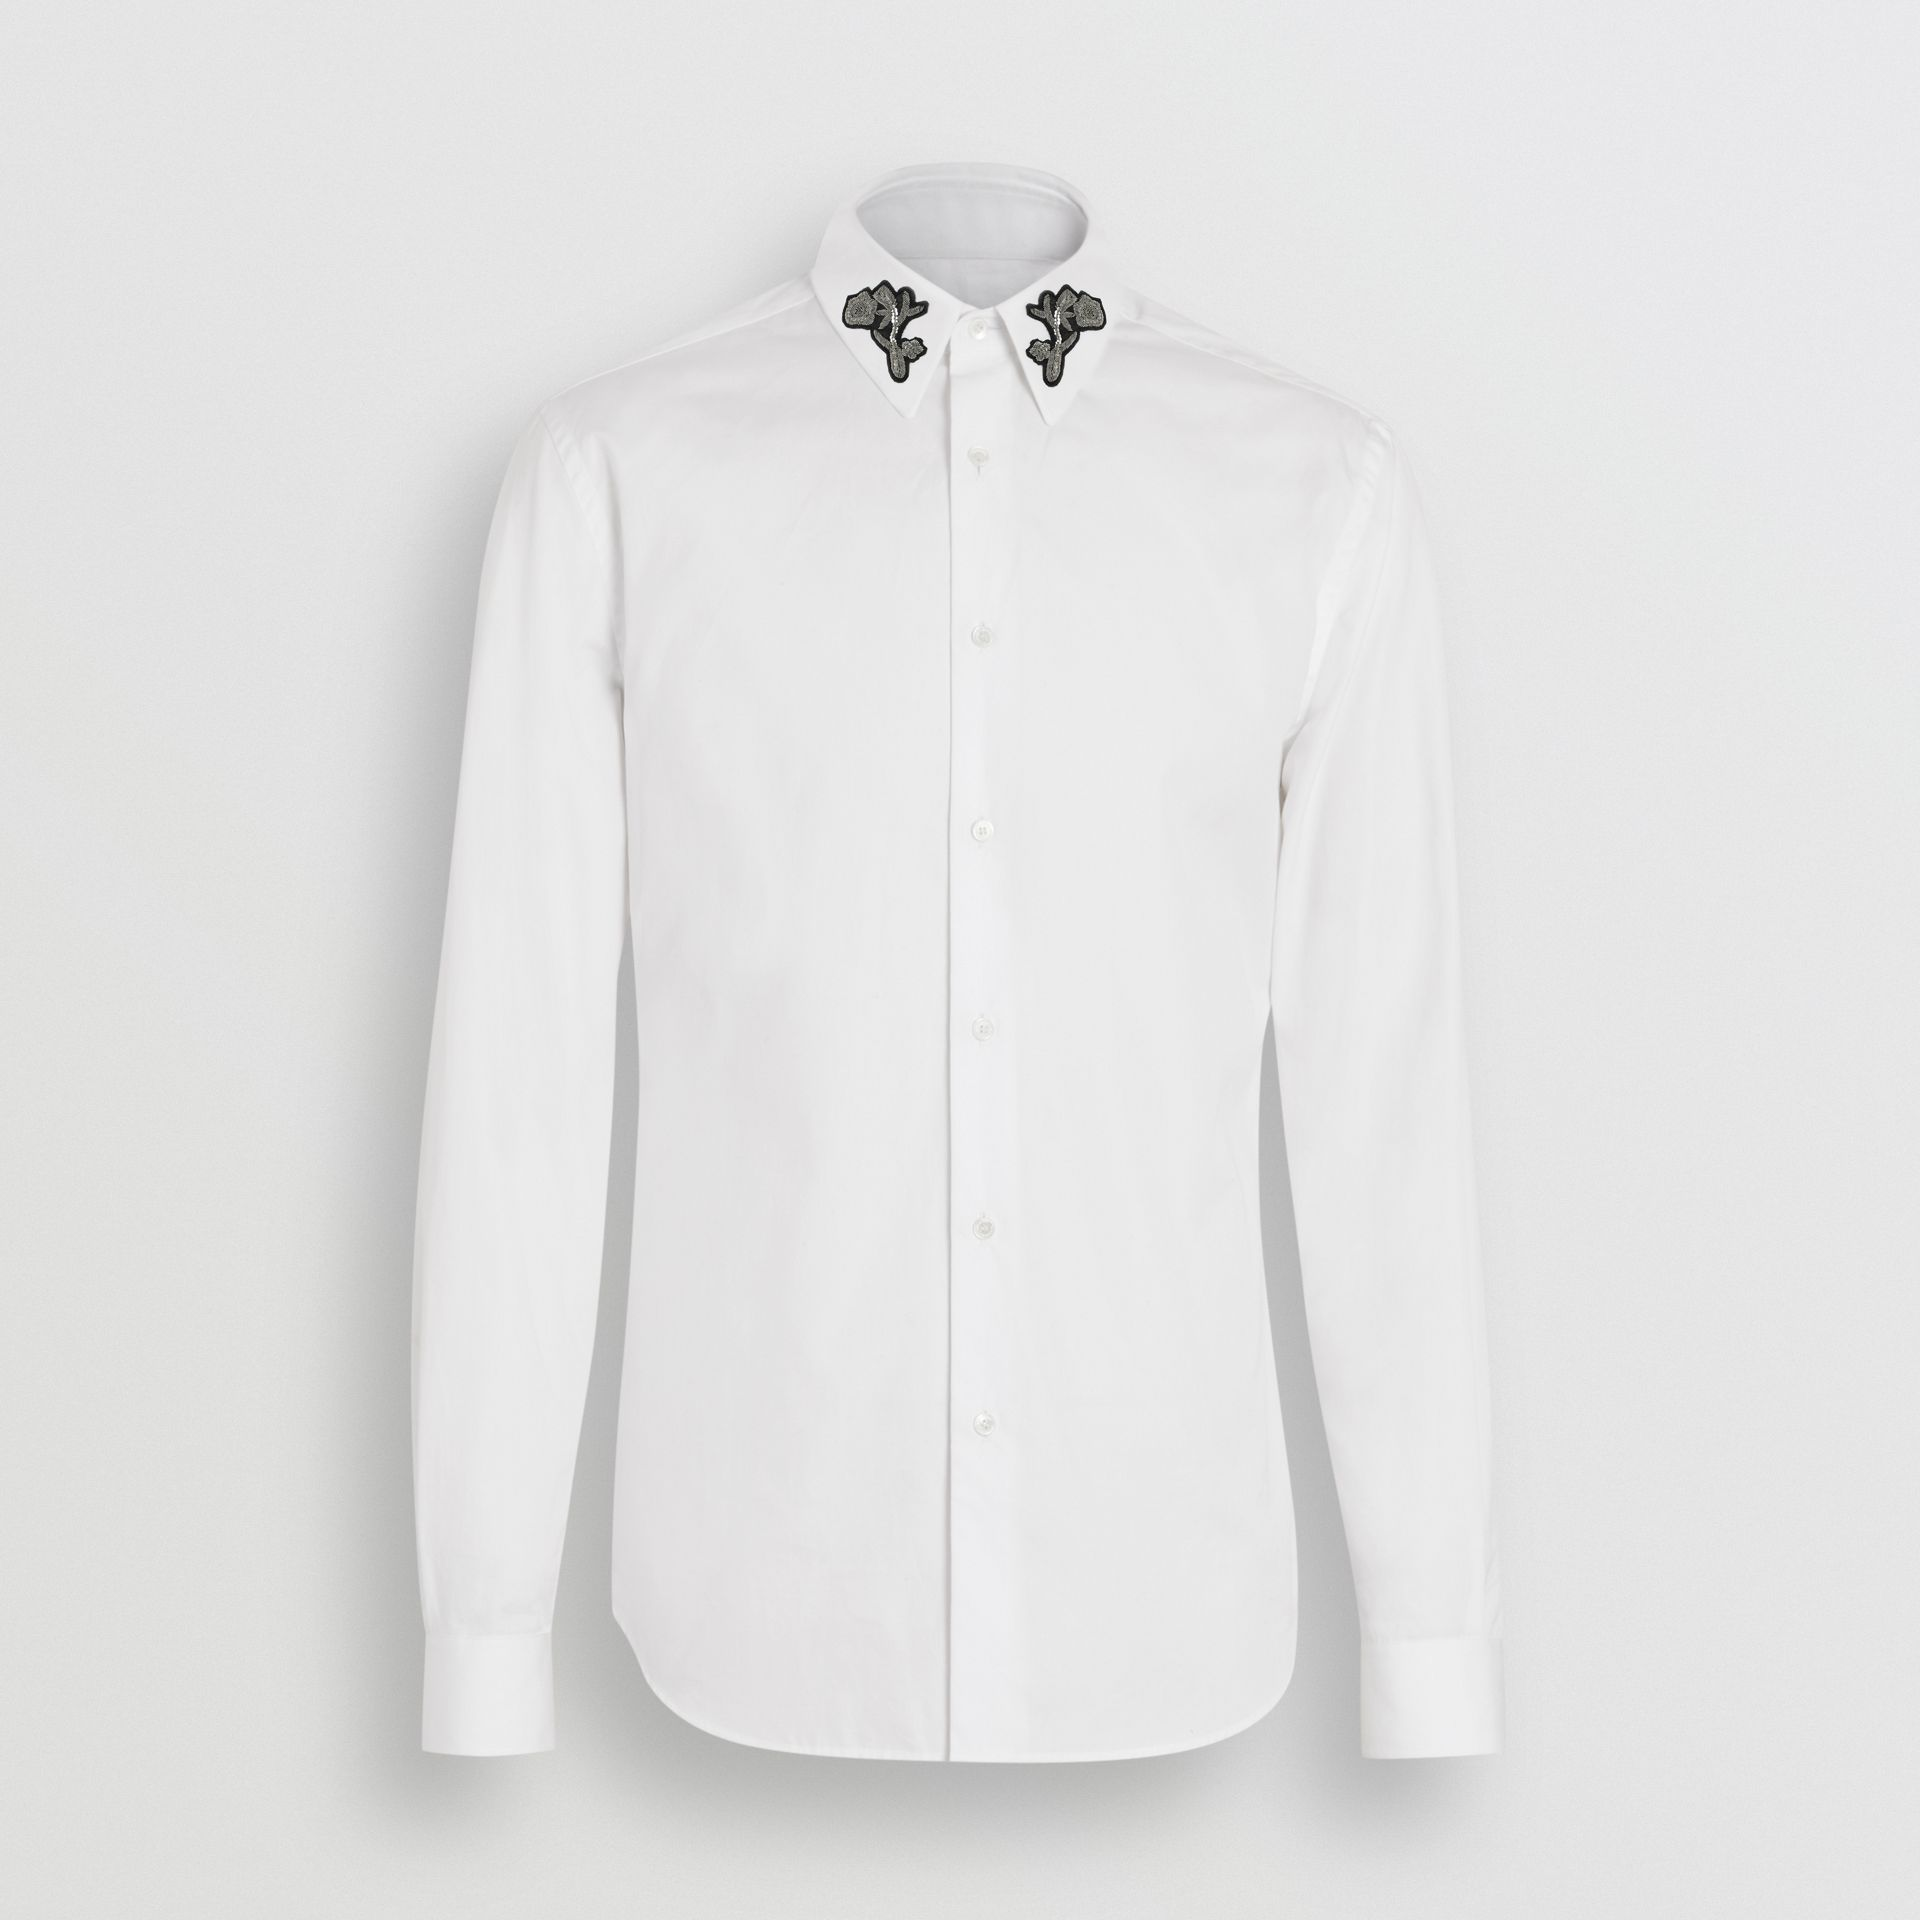 Slim Fit Bullion Floral Cotton Poplin Dress Shirt in White - Men | Burberry - gallery image 3